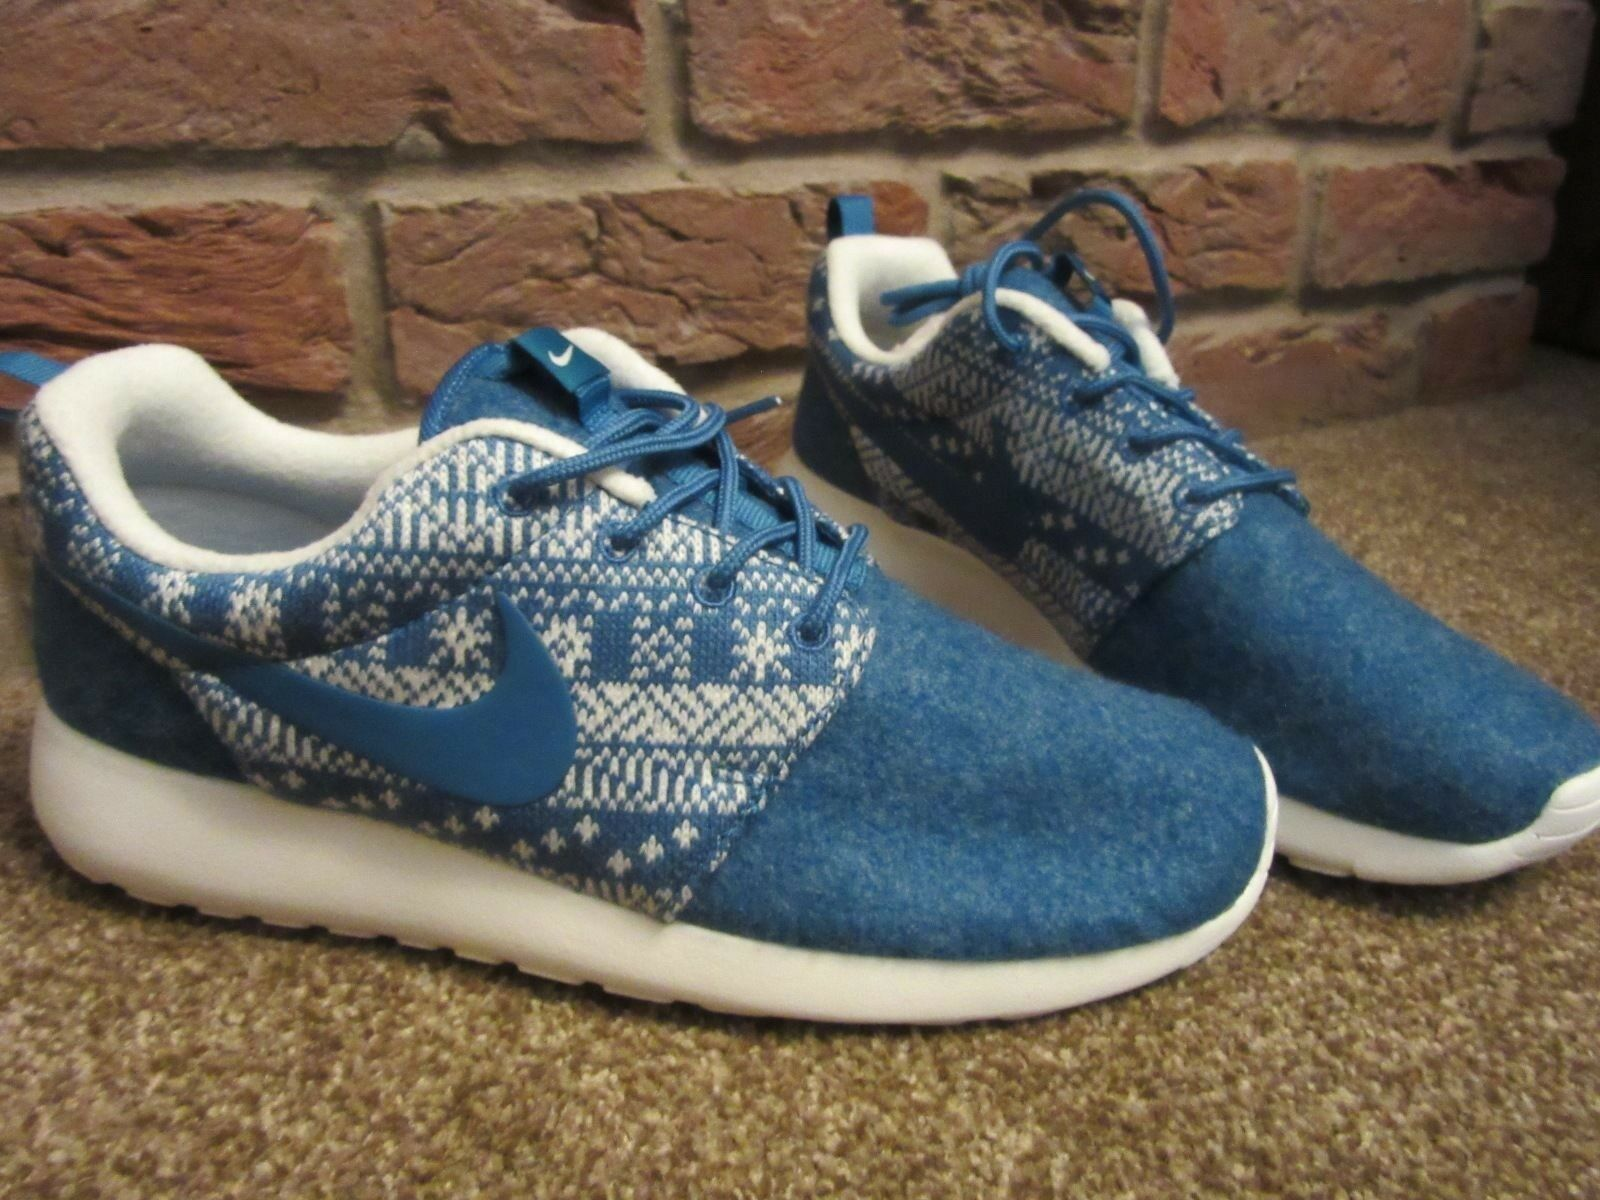 NEW UK 5.5 Womens NIKE Trainers bluee White Roshe 1 Winter Chunky Sole Fair Isle